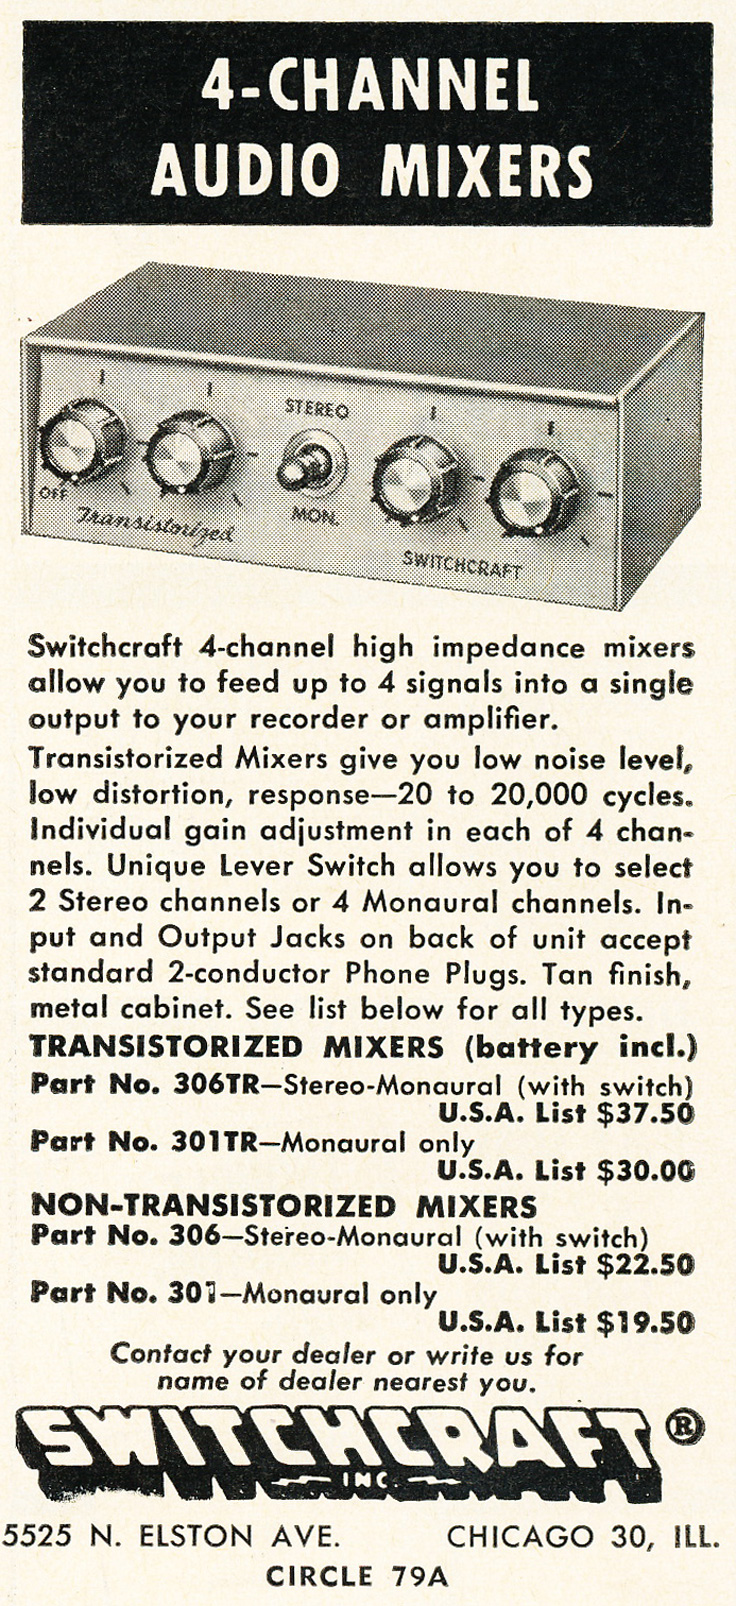 1963 ad for the Switchcraft 4 channel microphone mixer in Reel2ReelTexas.com's vintage recording collection